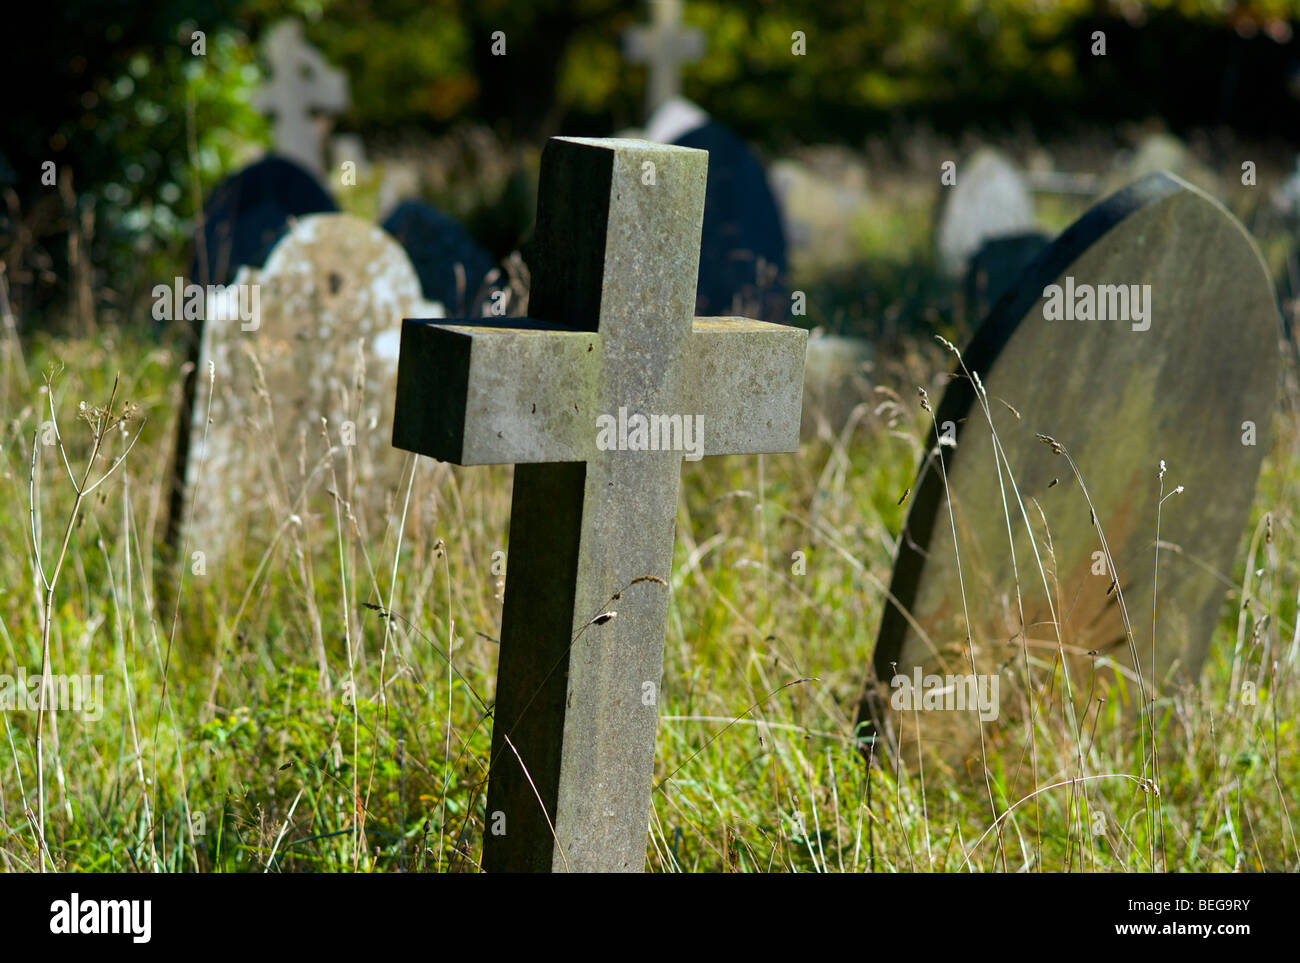 Old gravestones in a churchyard - Stock Image